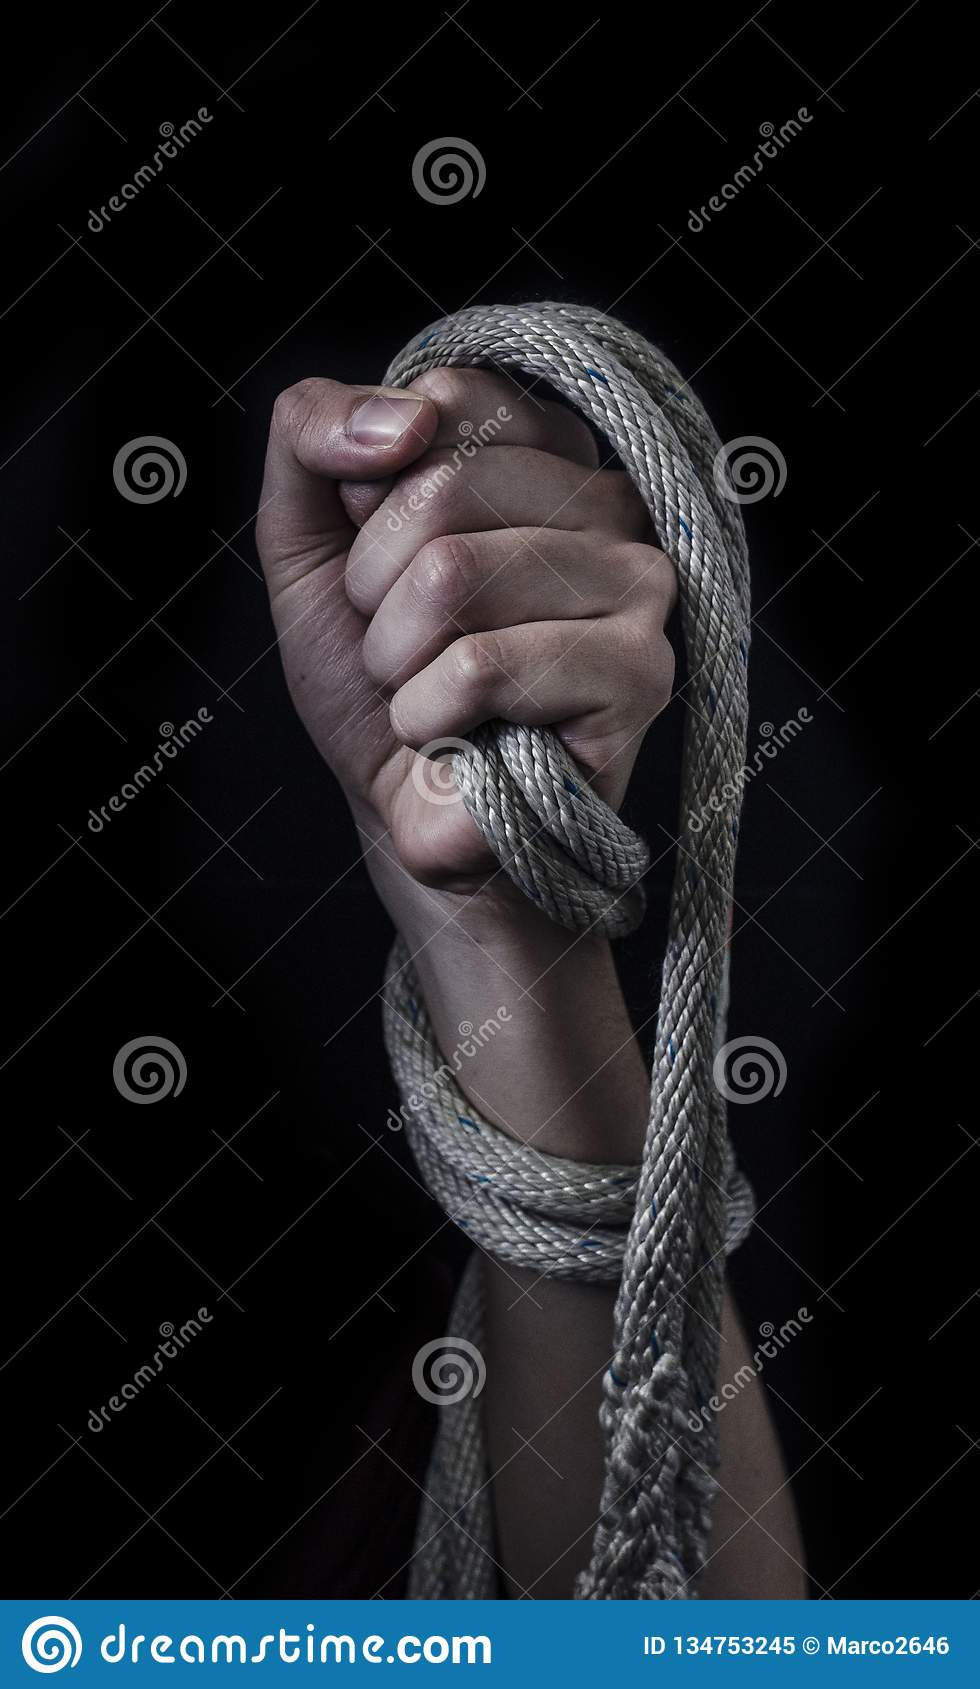 Clenched fist with tied up with a rope.